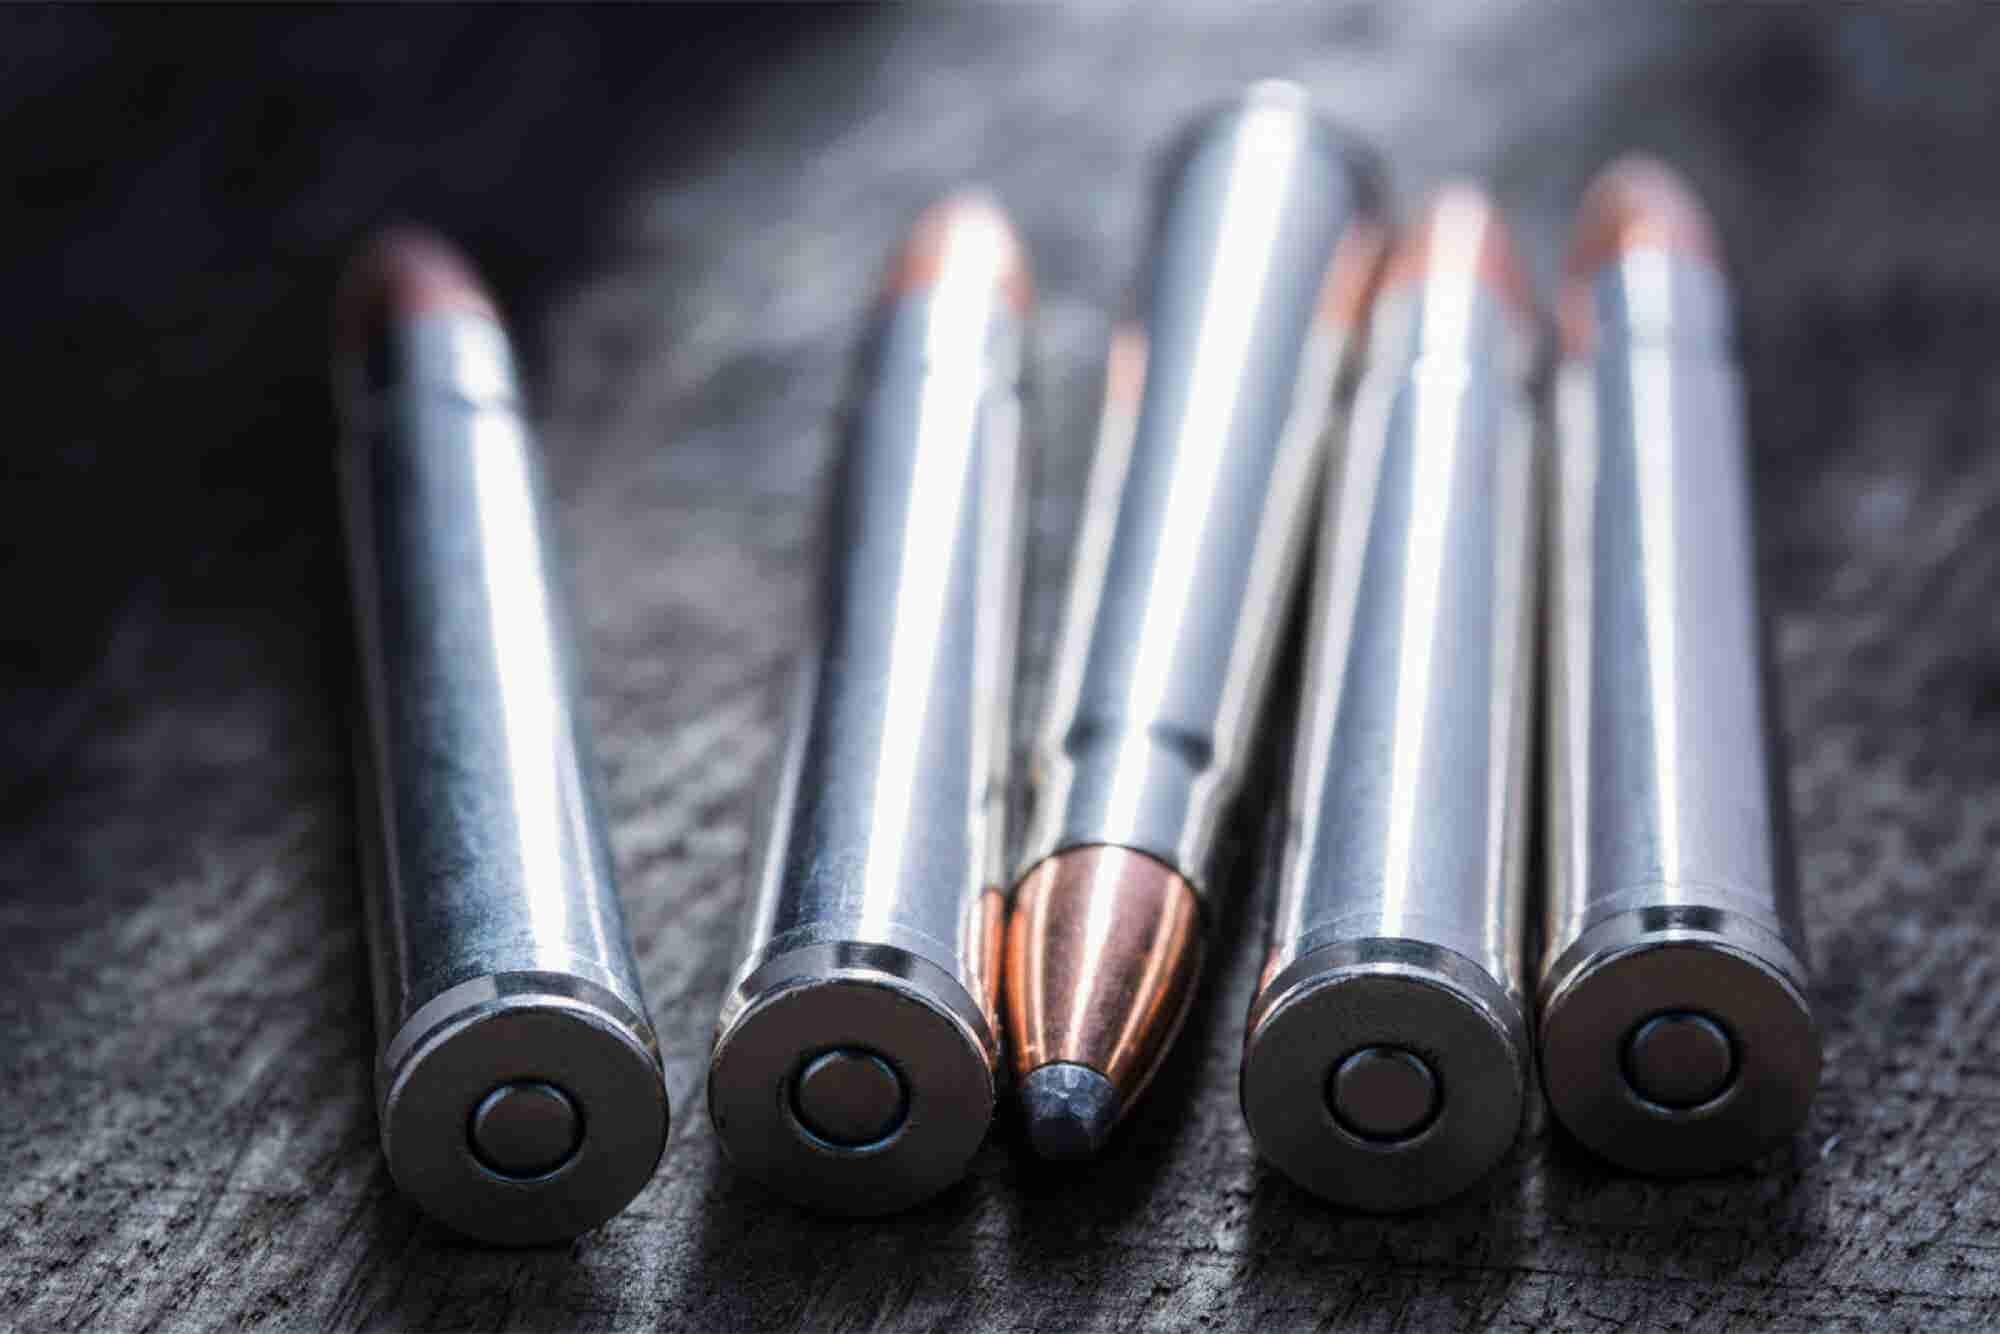 Seeking Silver Bullets Sets Up Companies to Fail